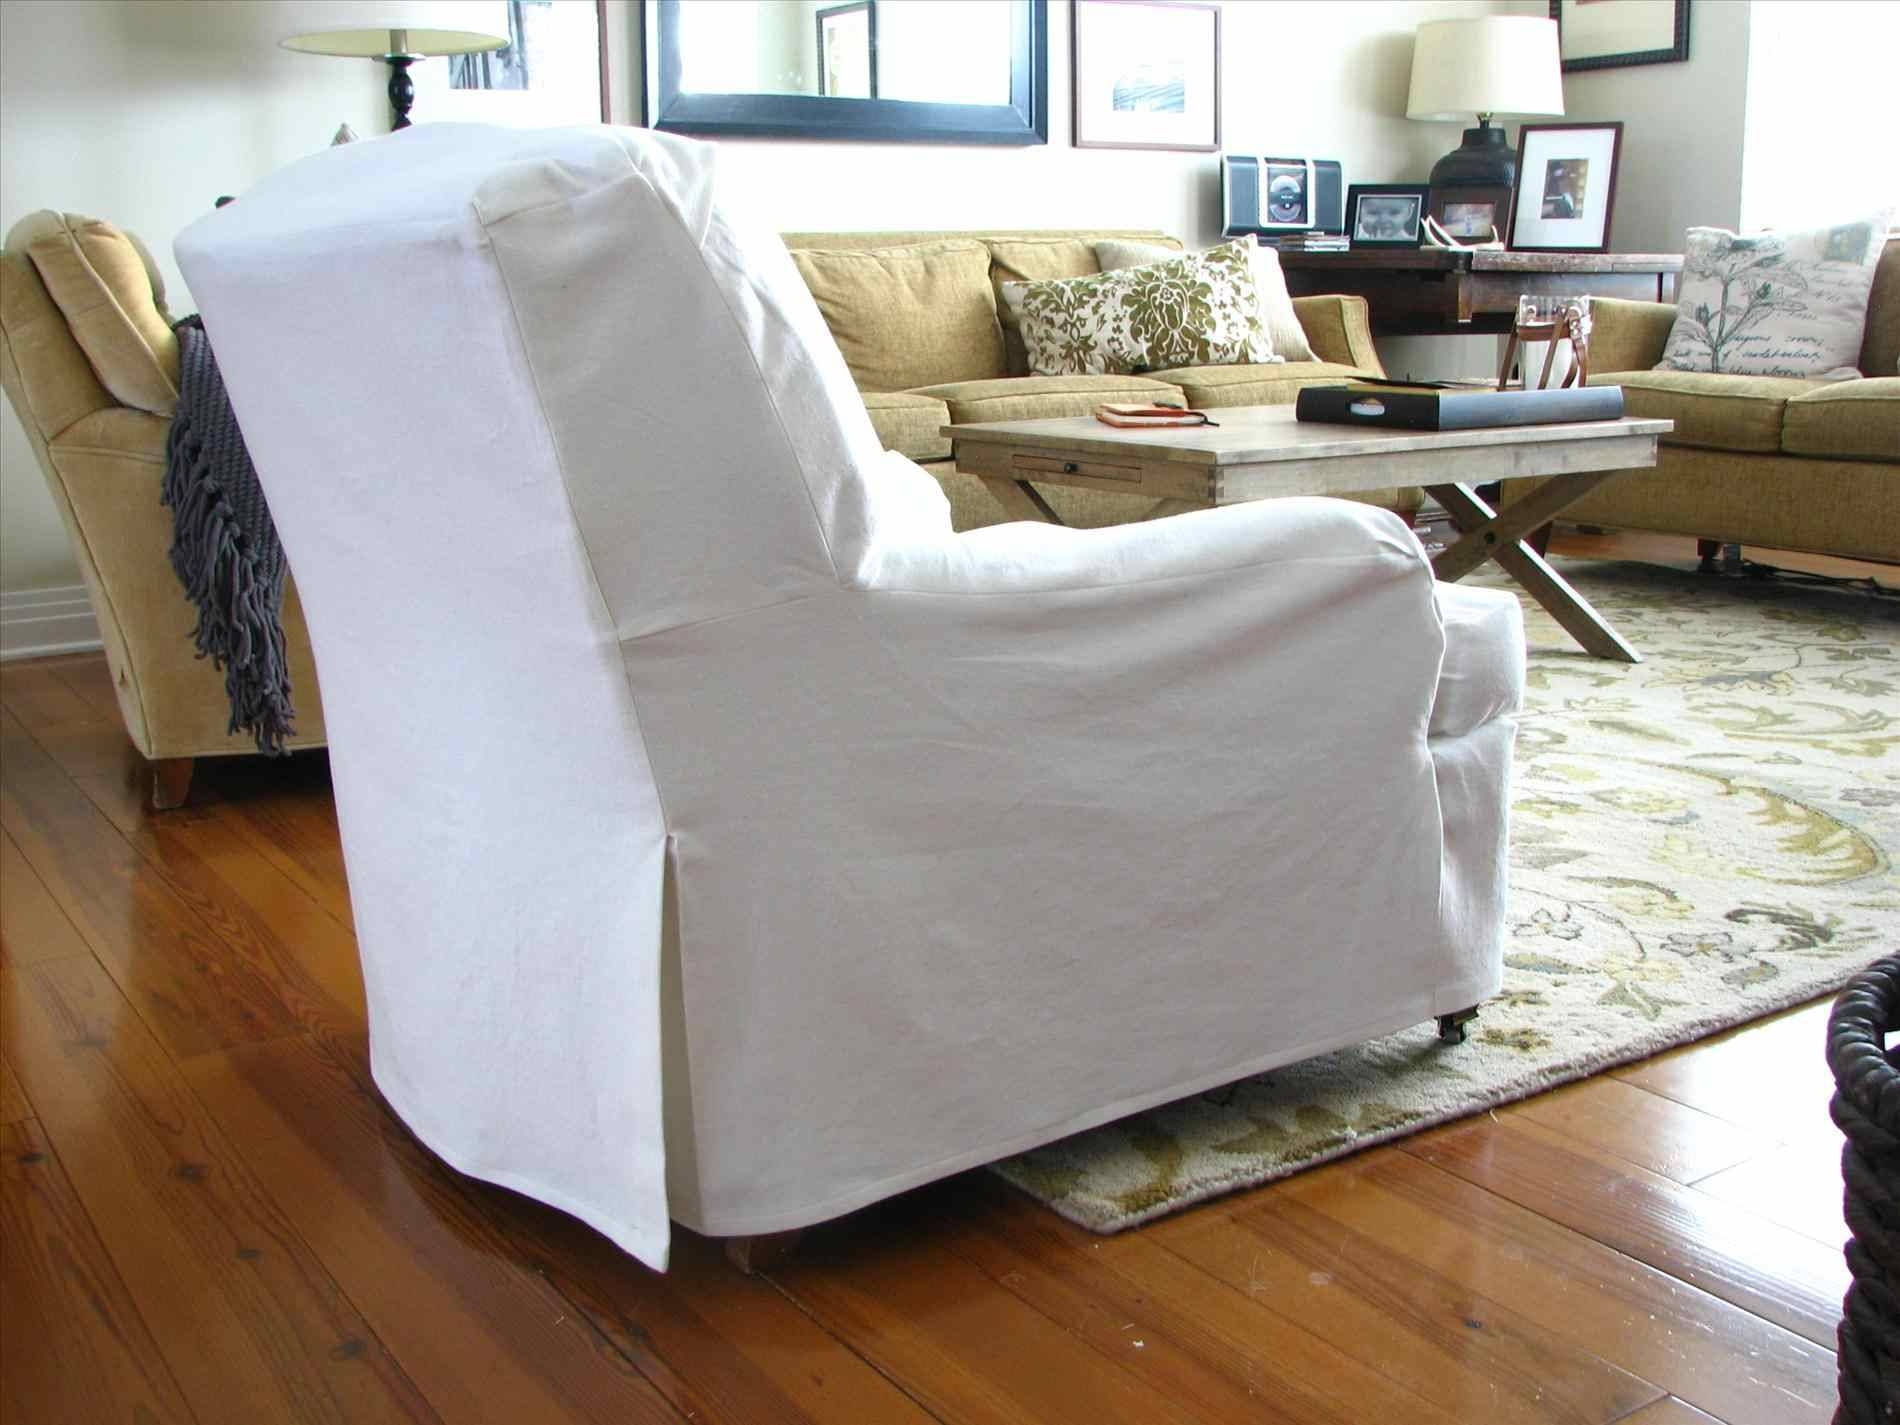 Dining Room Chair Slipcovers Pottery Barn | Best Home Decor with Pottery Barn Chair Slipcovers (Image 7 of 15)